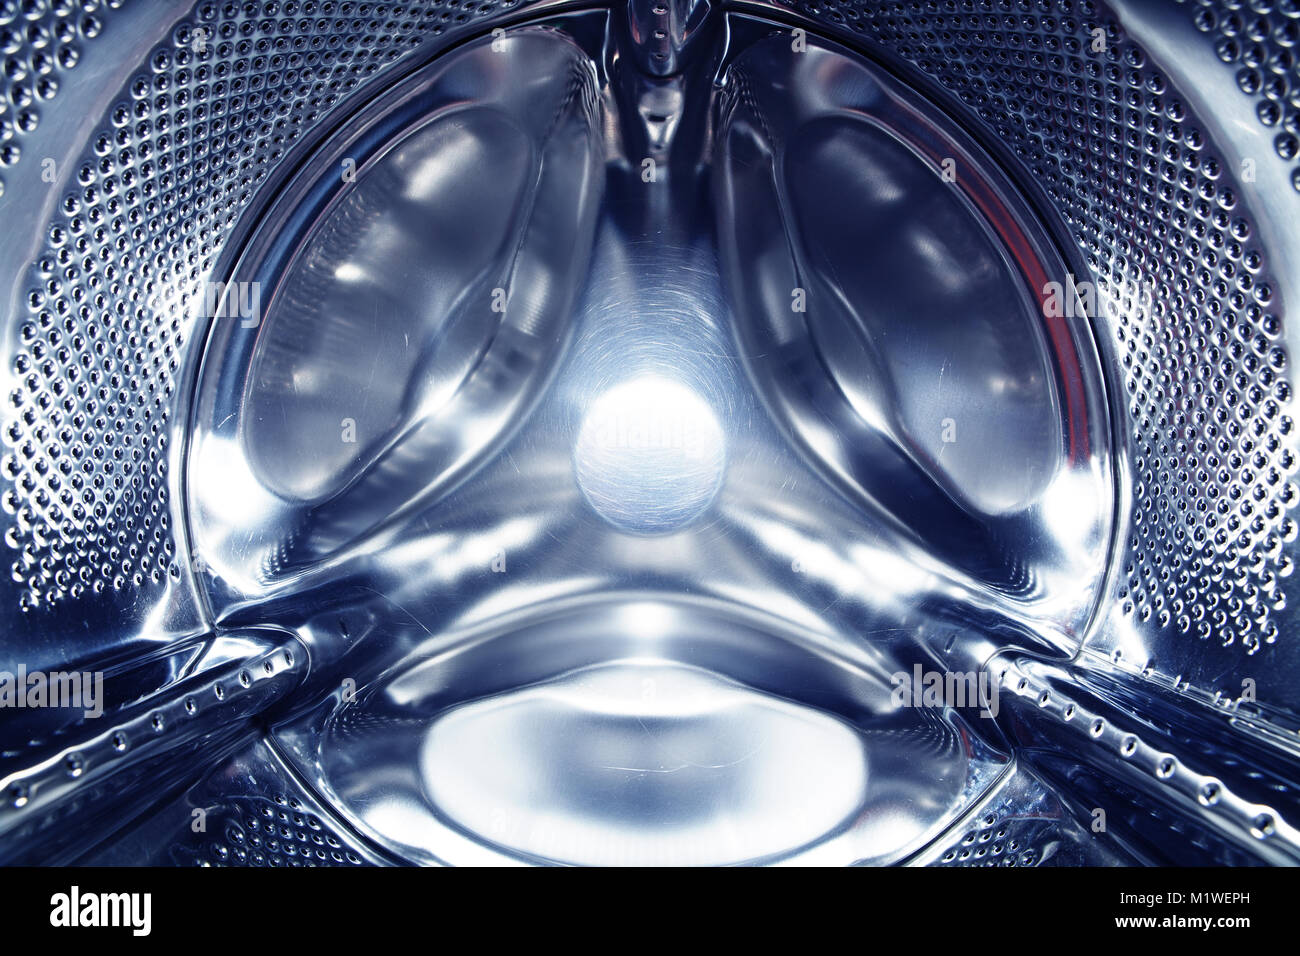 closeup of drum in washing machine, new technology - Stock Image